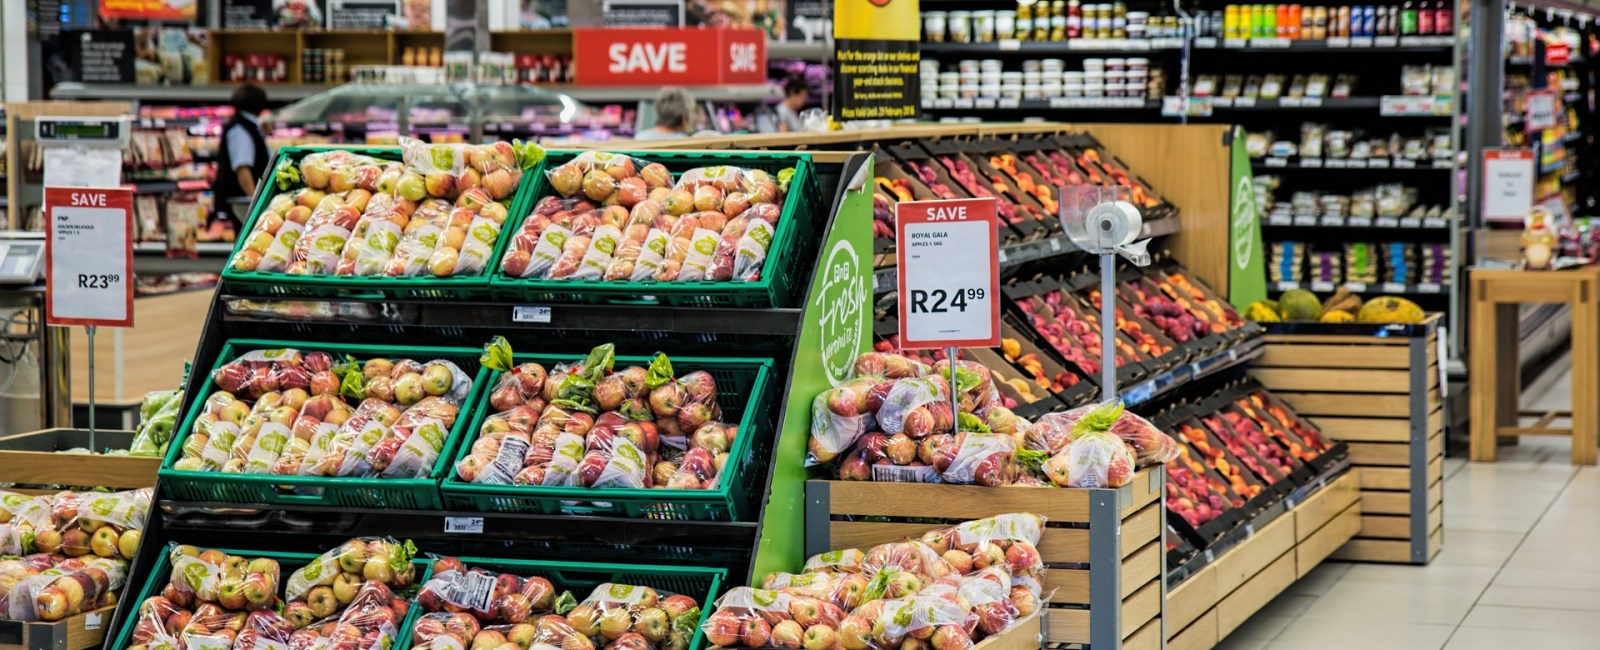 15 Simple Ways To Save Money on Groceries